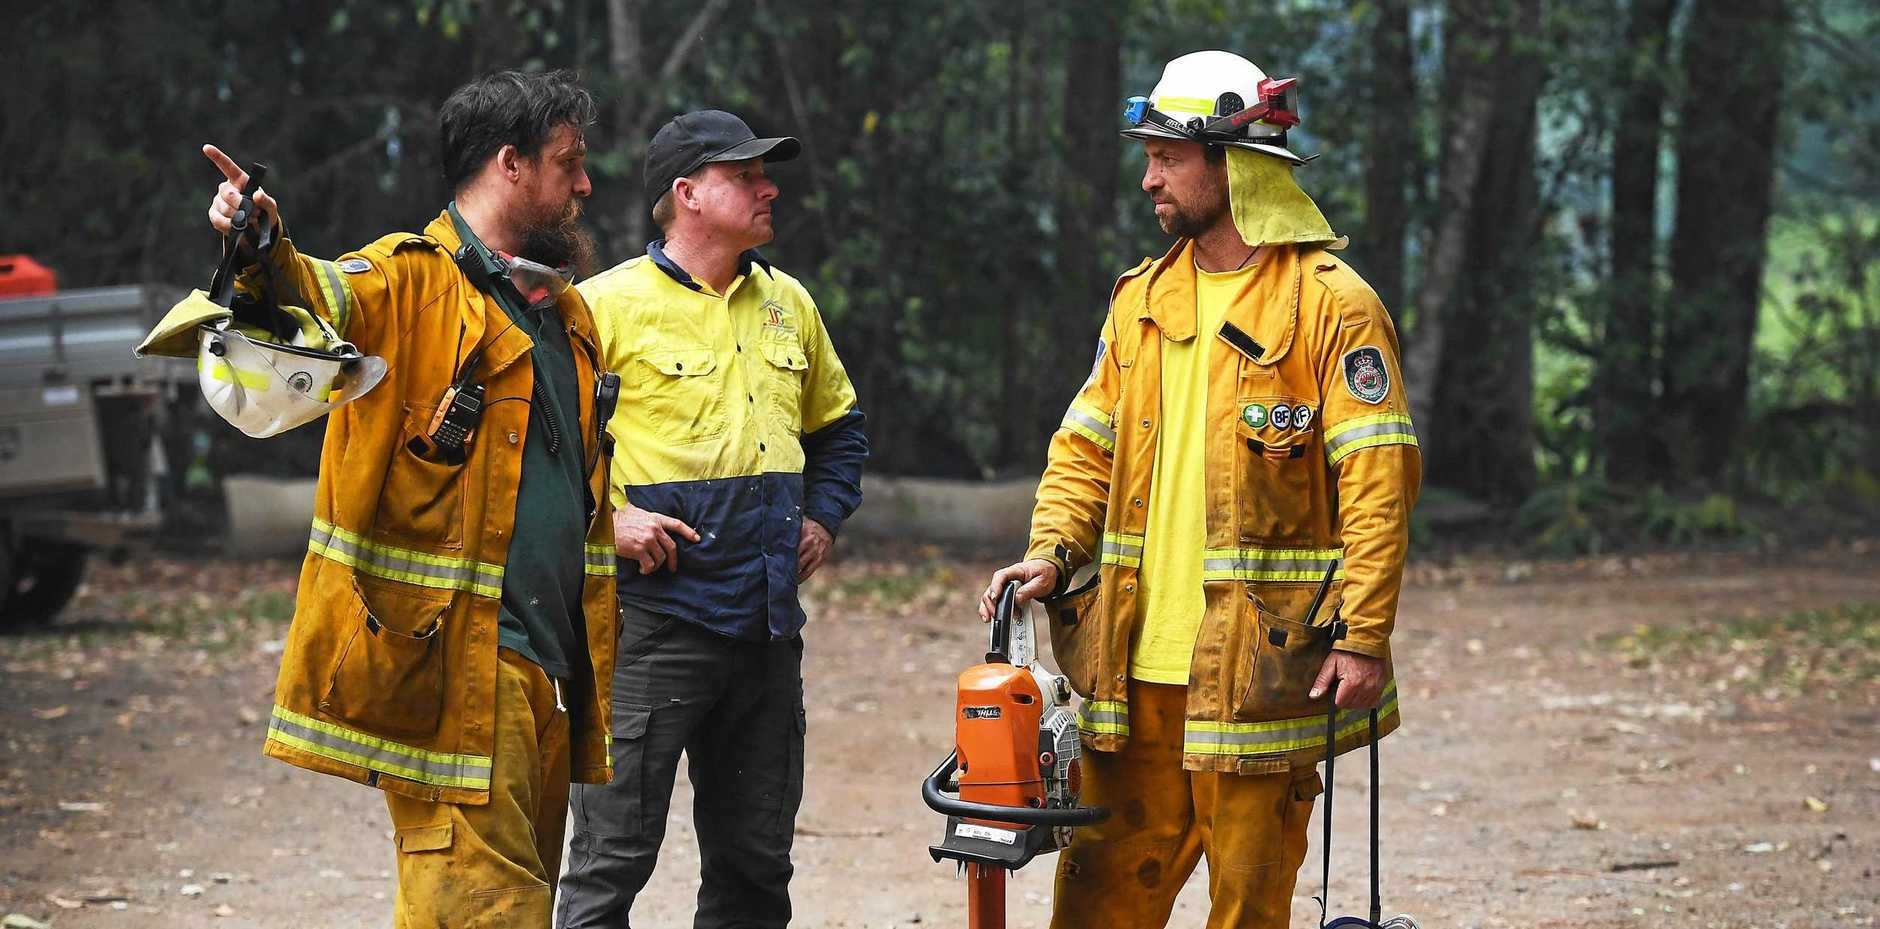 Rural Fire Service discuss ongoing fire preparations and fire fighting efforts near Tuntable Falls as emegency service personal prepare for a horror day with high winds.